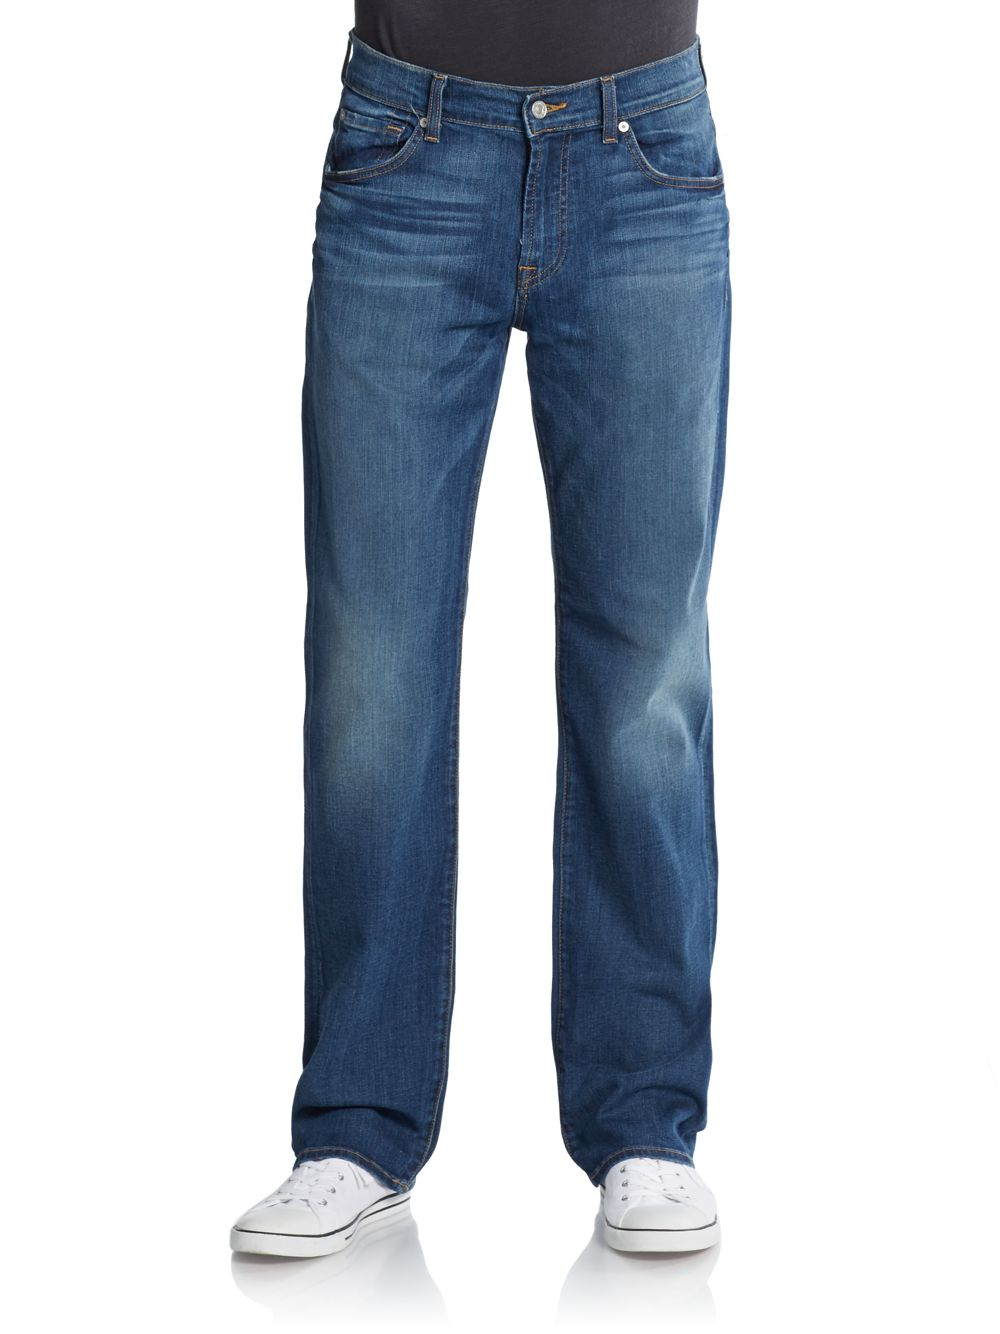 7 for all mankind standard whiskered straight leg jeans in blue for men dark wash lyst. Black Bedroom Furniture Sets. Home Design Ideas